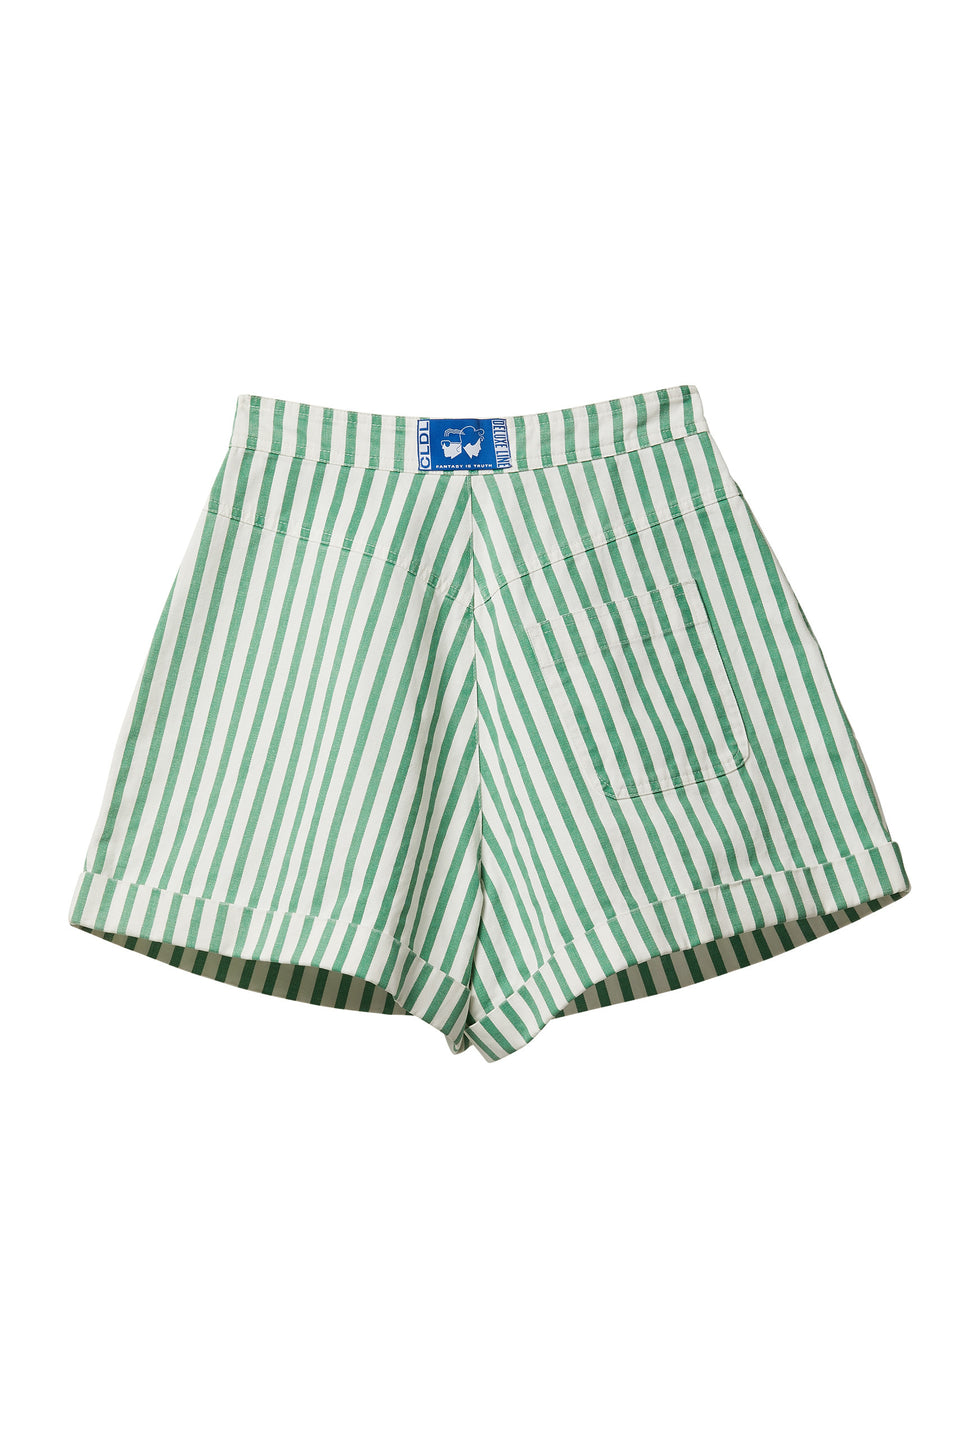 Lodge Pleated Short (CLDL-032)